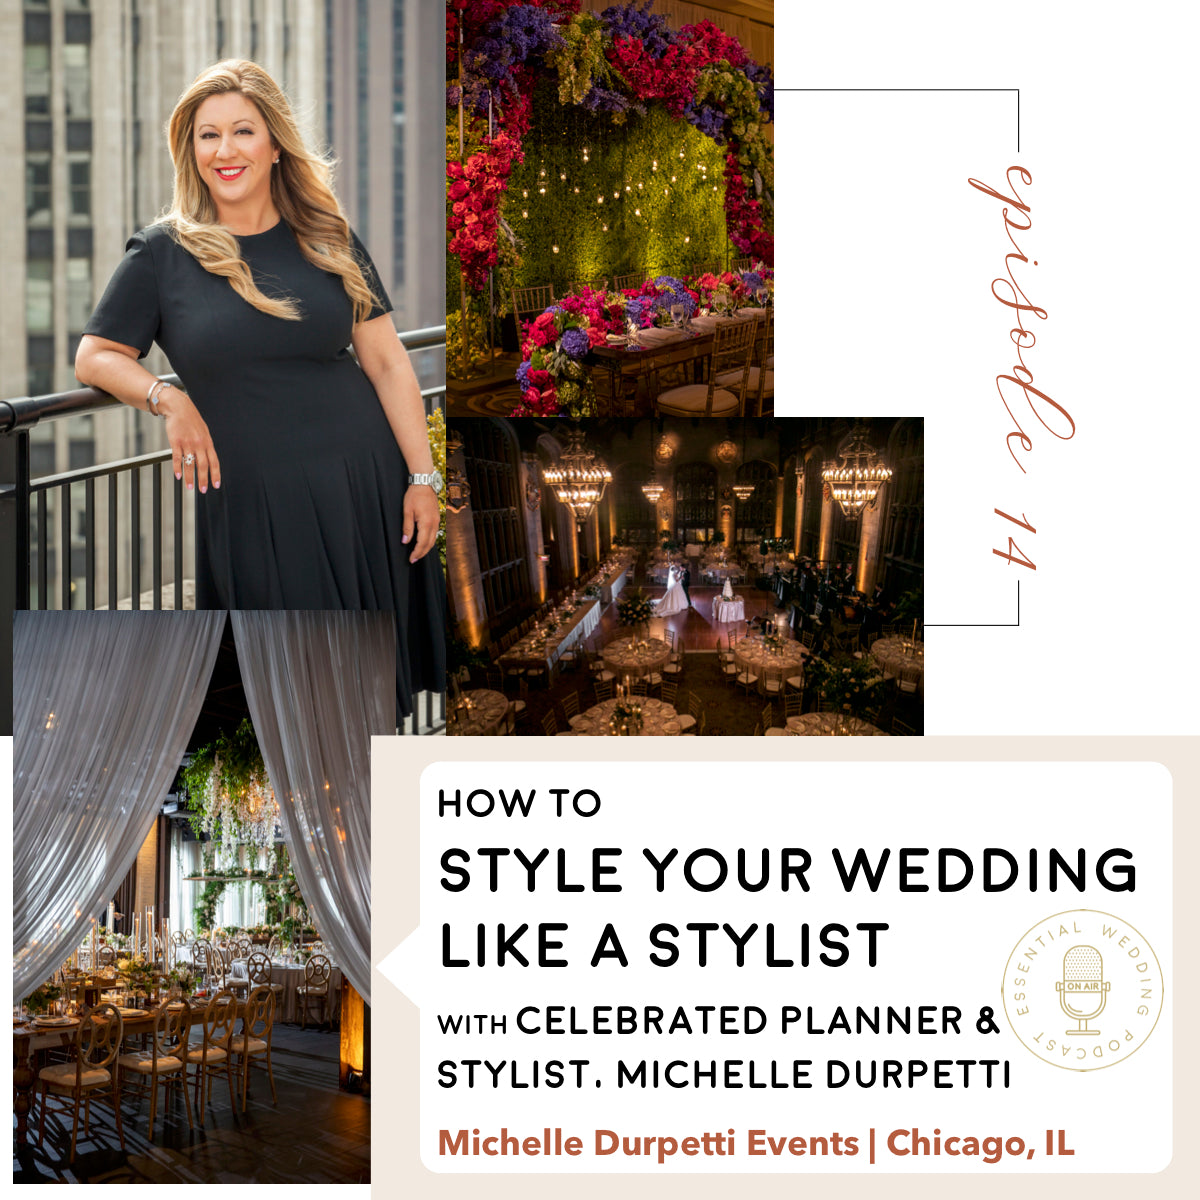 Ep. 14 How to Style Your Wedding Like a Stylist w/Michelle Durpetti, Celebrated Wedding Planner and Stylist